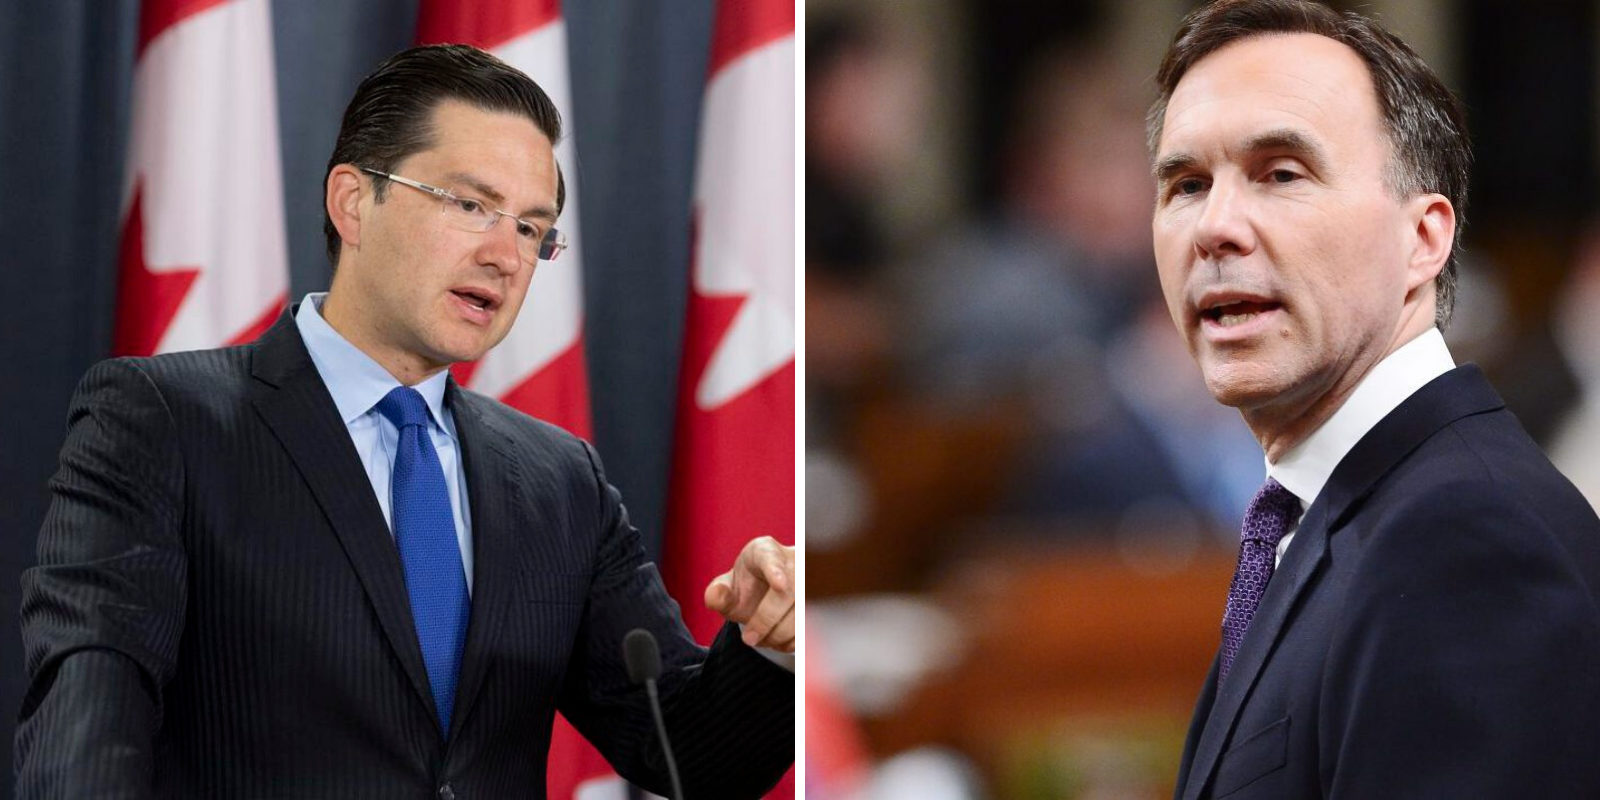 POILIEVRE: The imaginary unicorn 'balance sheet'